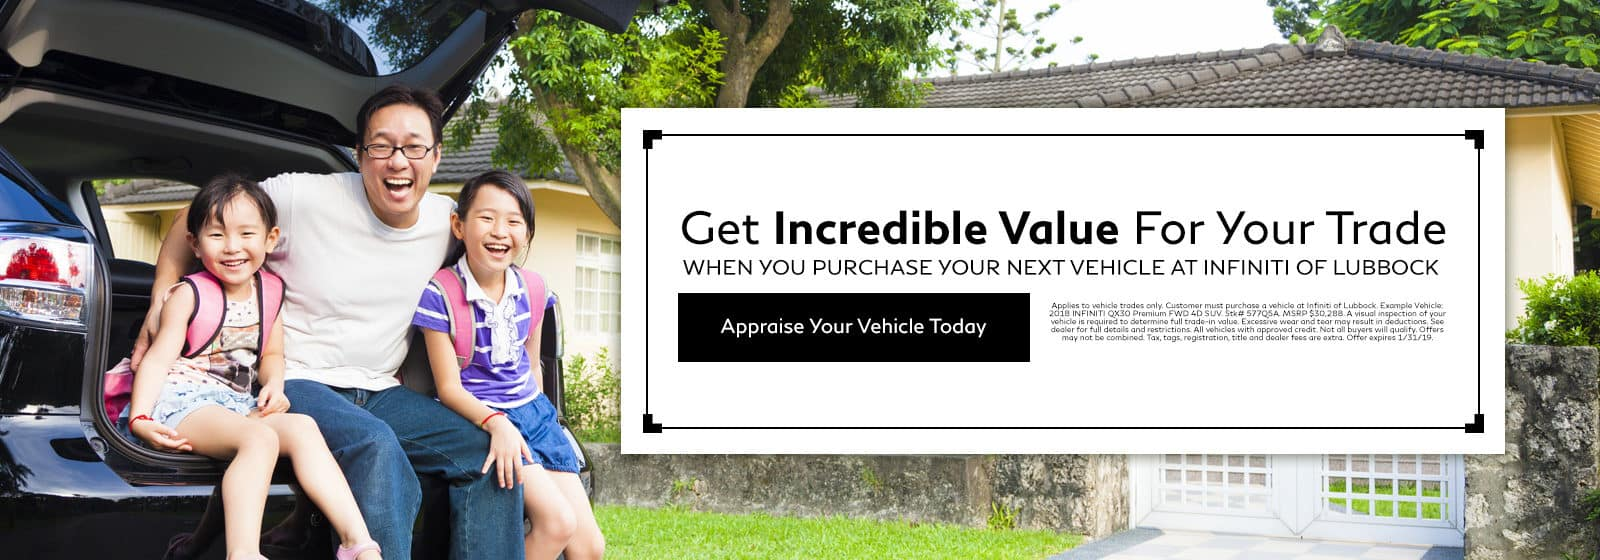 Get incredible value for your trade when you purchase your next vehicle at INFINITI of Lubbock - Appraise your vehicle today